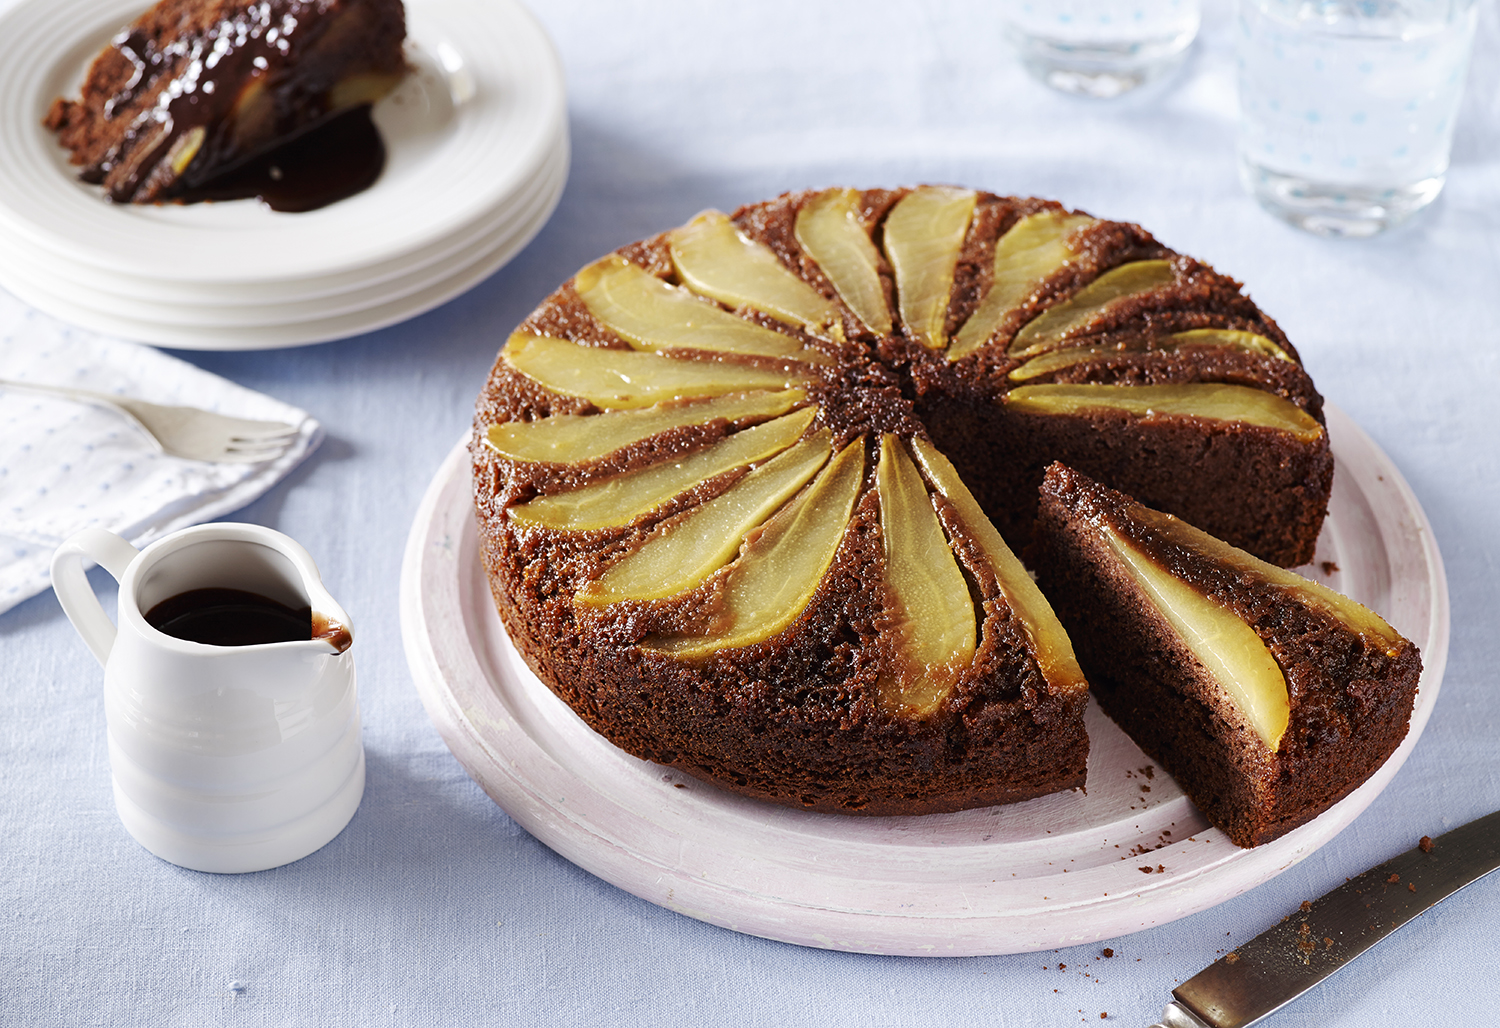 Cake Photography for the Betty Crocker Online Recipe Collection - Pear Upside Down Cake